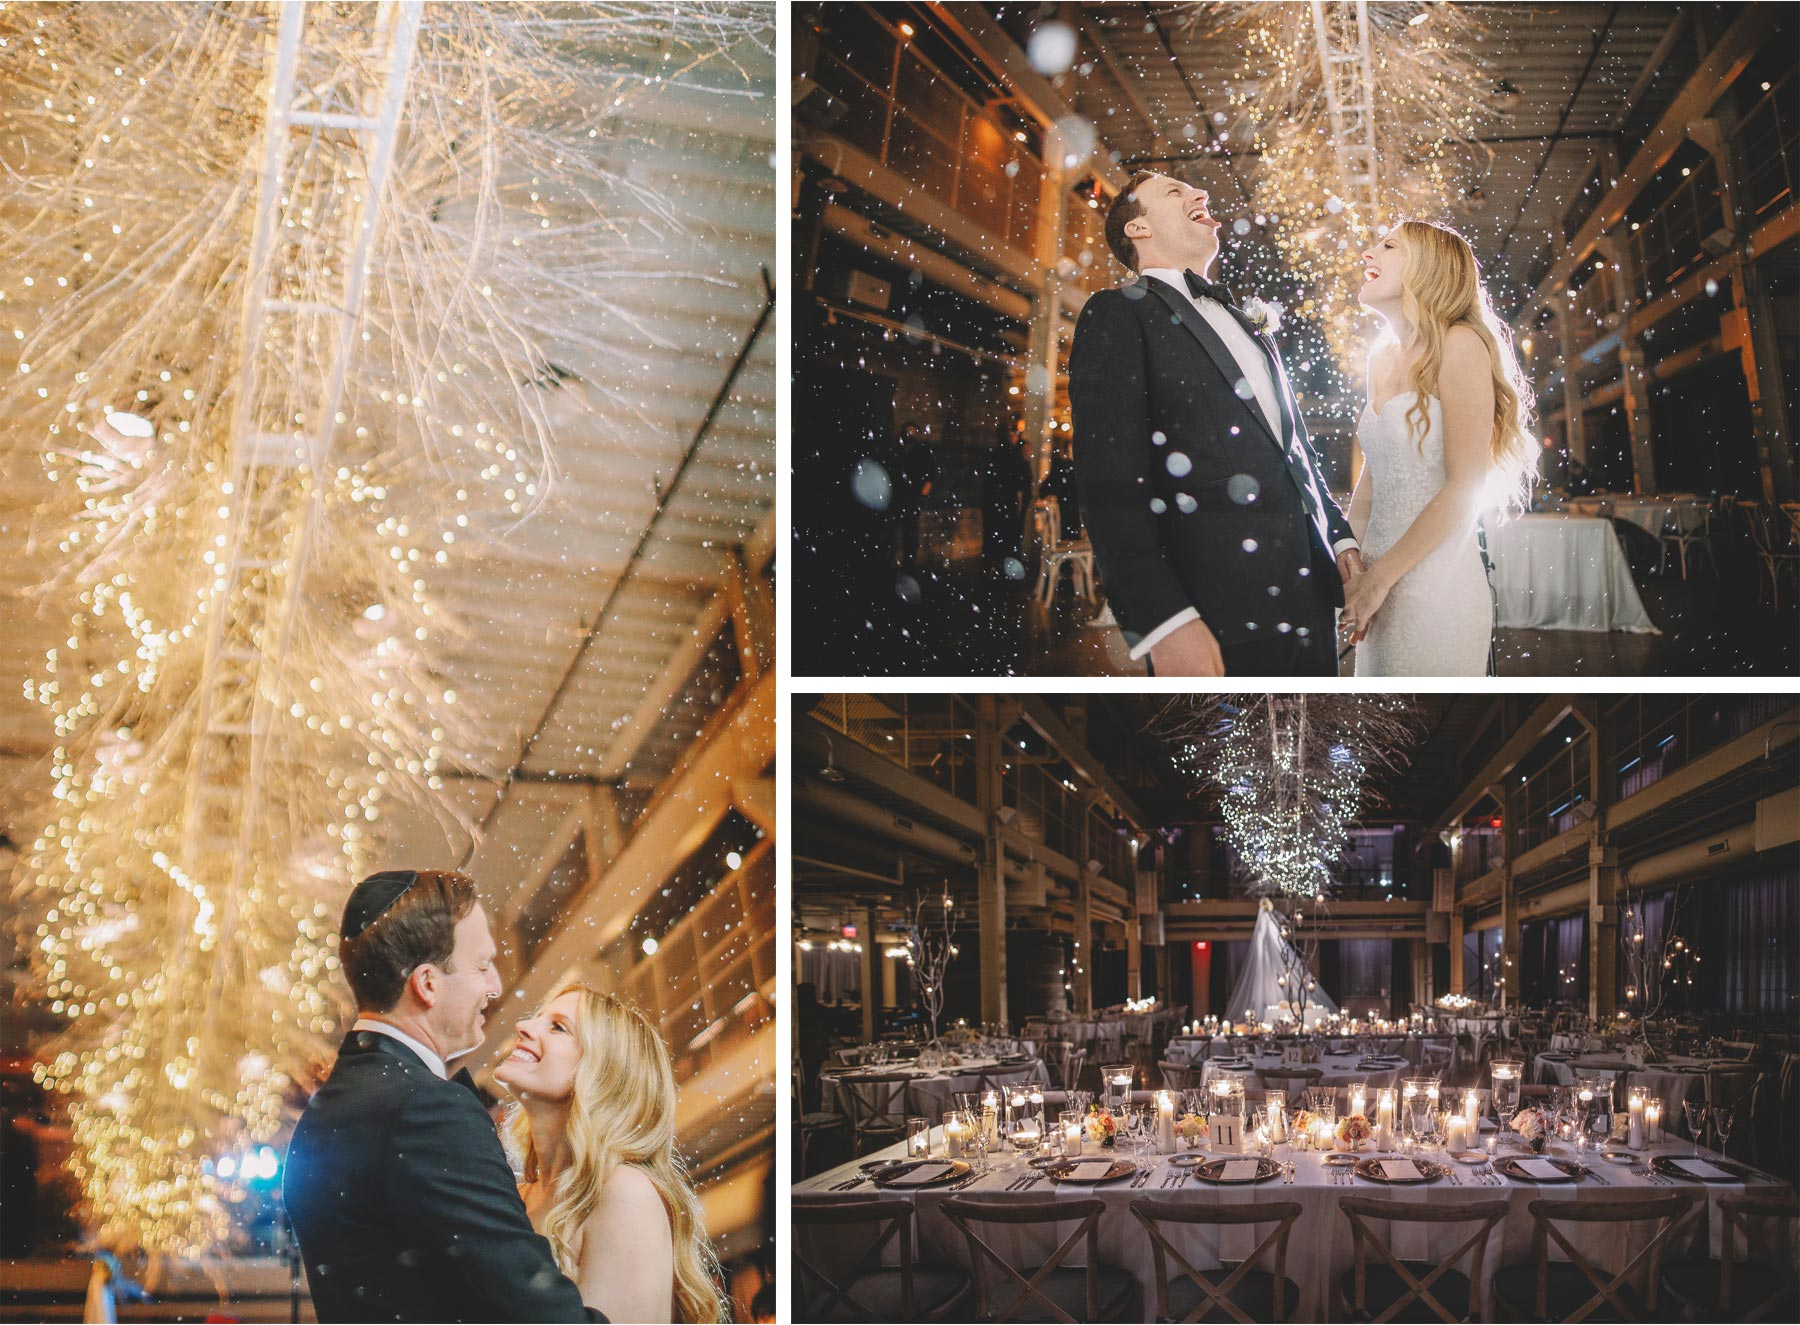 16-Minneapolis-Minnesota-Wedding-Photographer-by-Vick-Photography--Indoor-Snow-Bride-and-Groom-Winter-Wedding-Machine-Shop-Alyssa-and-Garron.jpg